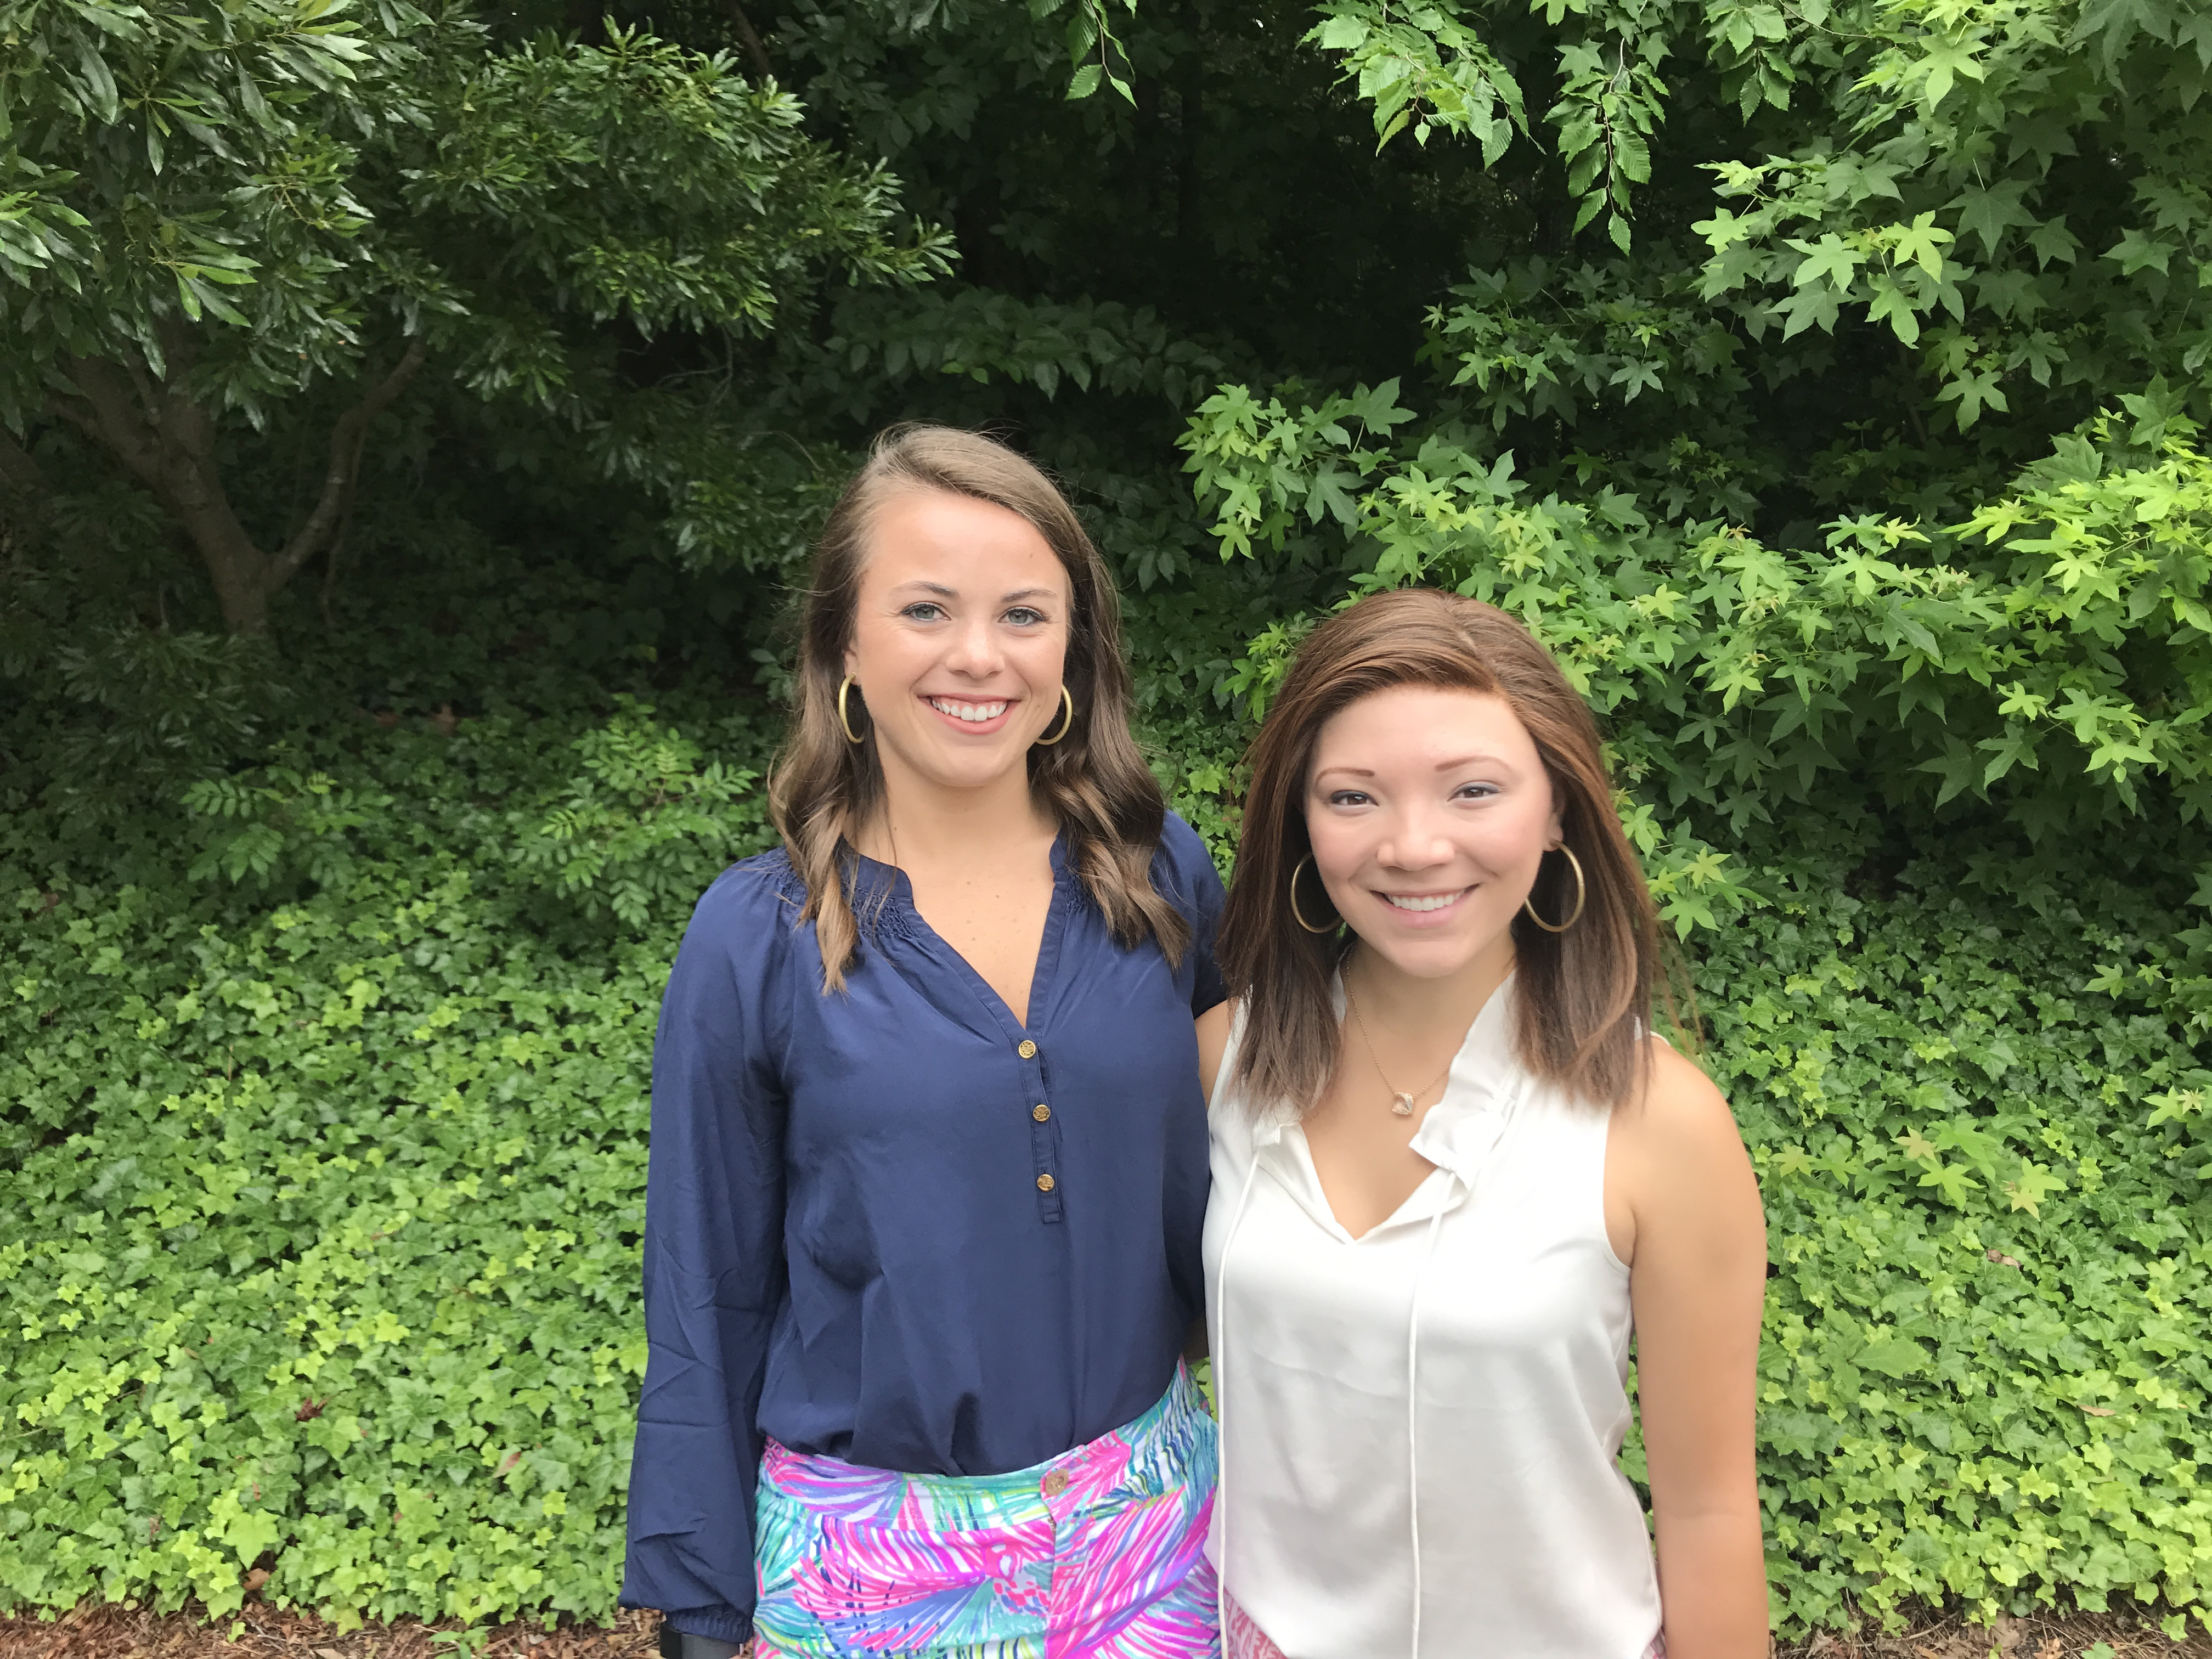 Meet the Summer 2017 Interns - Courtney and Jacqueline